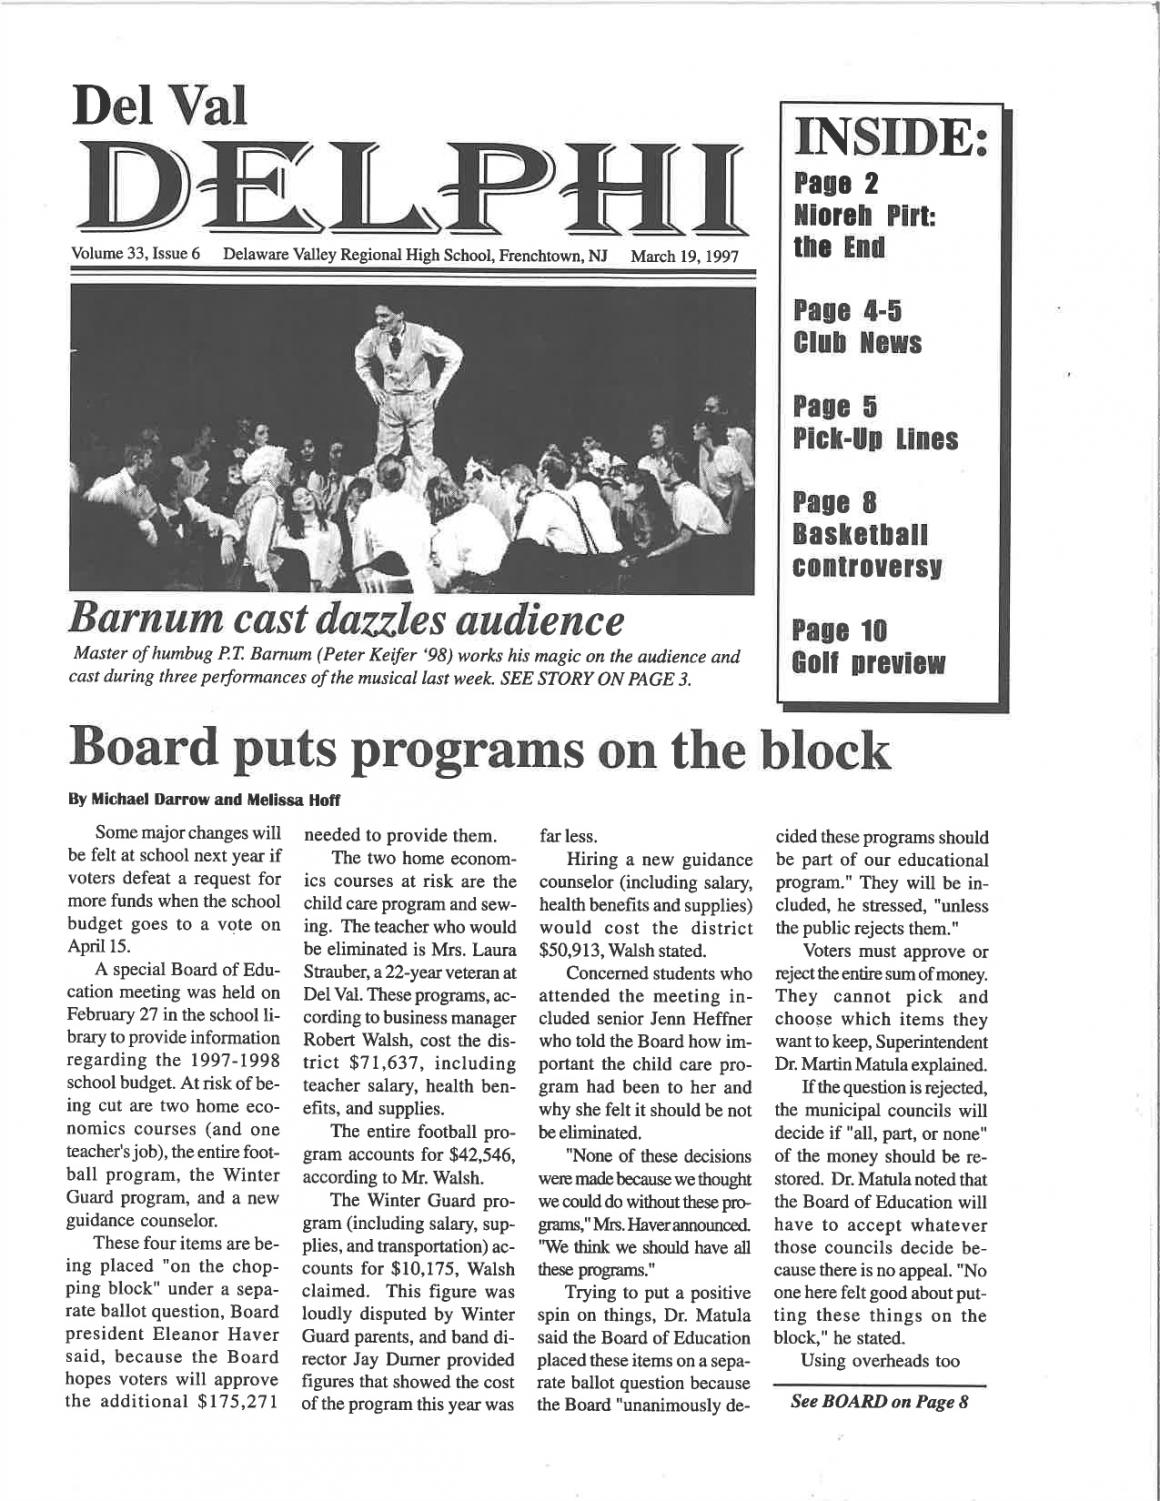 The cover of the March 19, 1997 issue of the Del Val Delphi